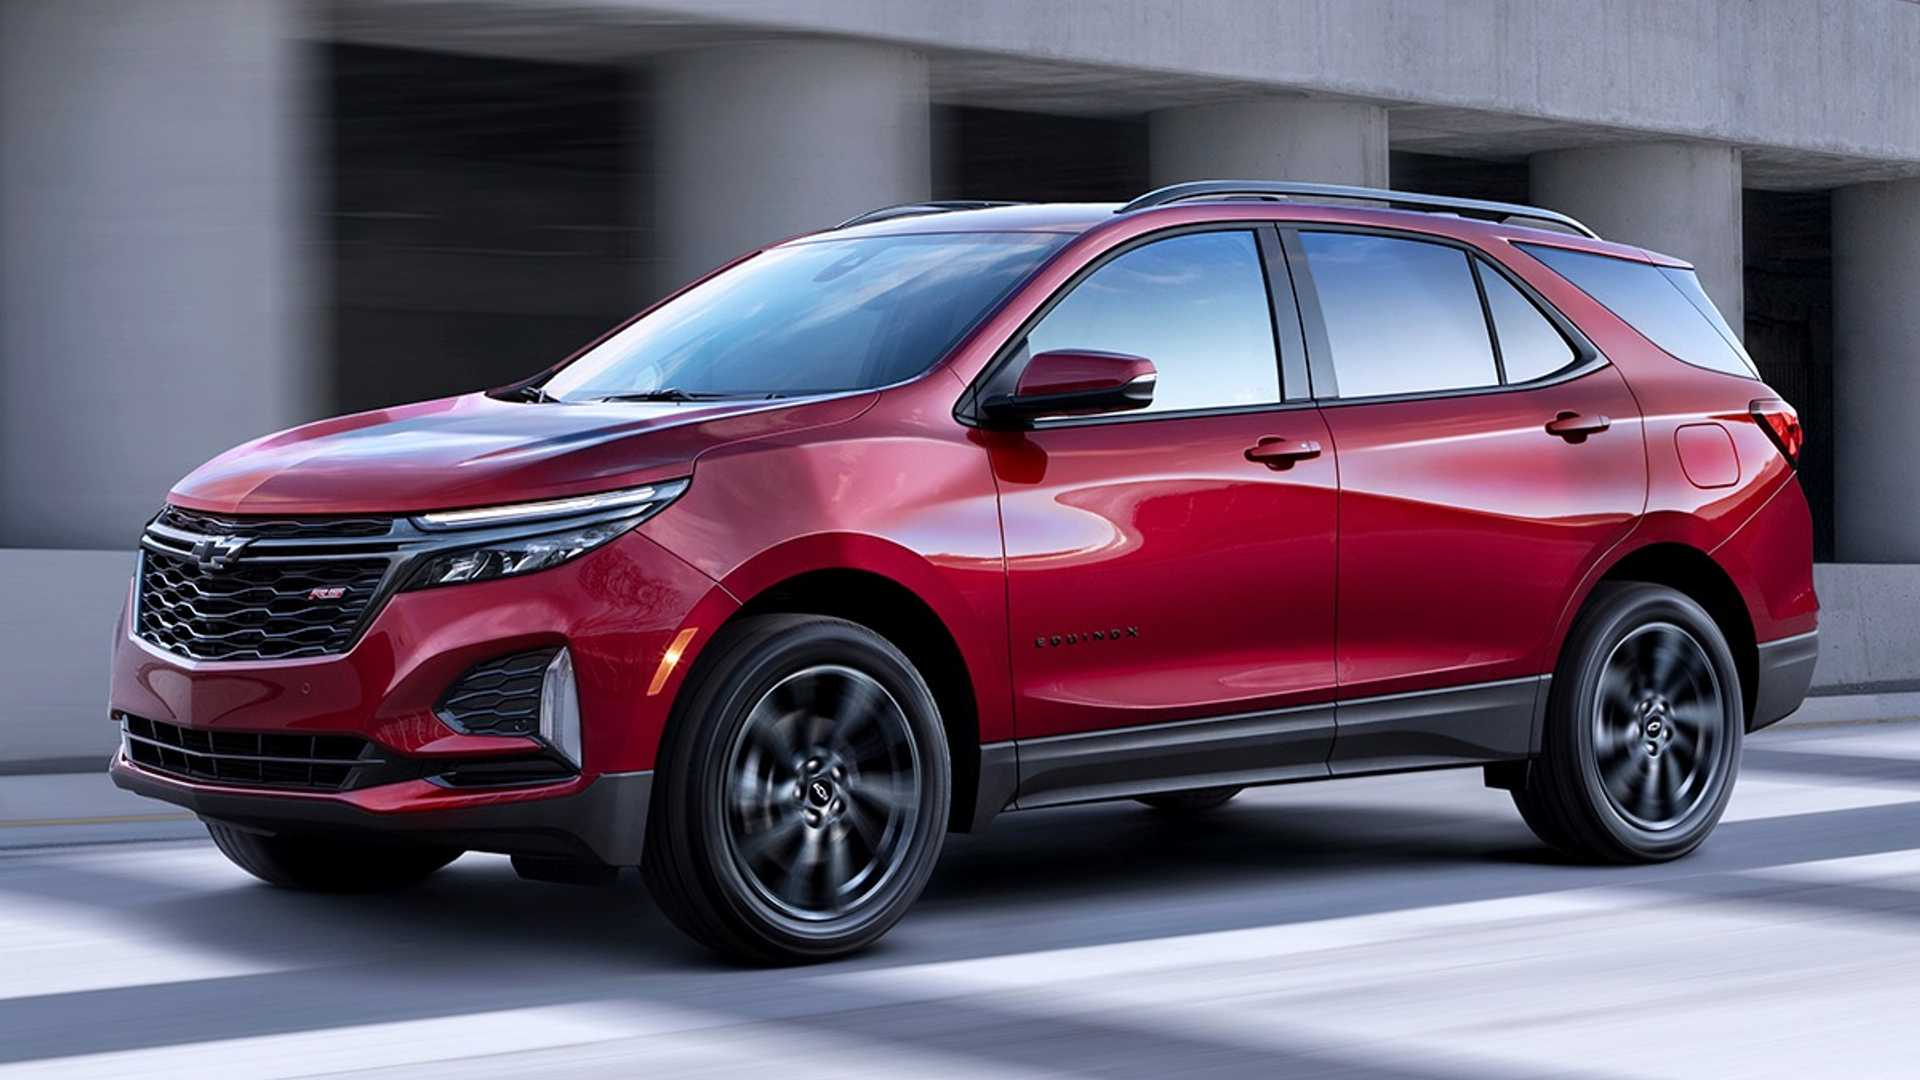 Current And Next Gen Chevy Equinox Could Overlap For Nine Months